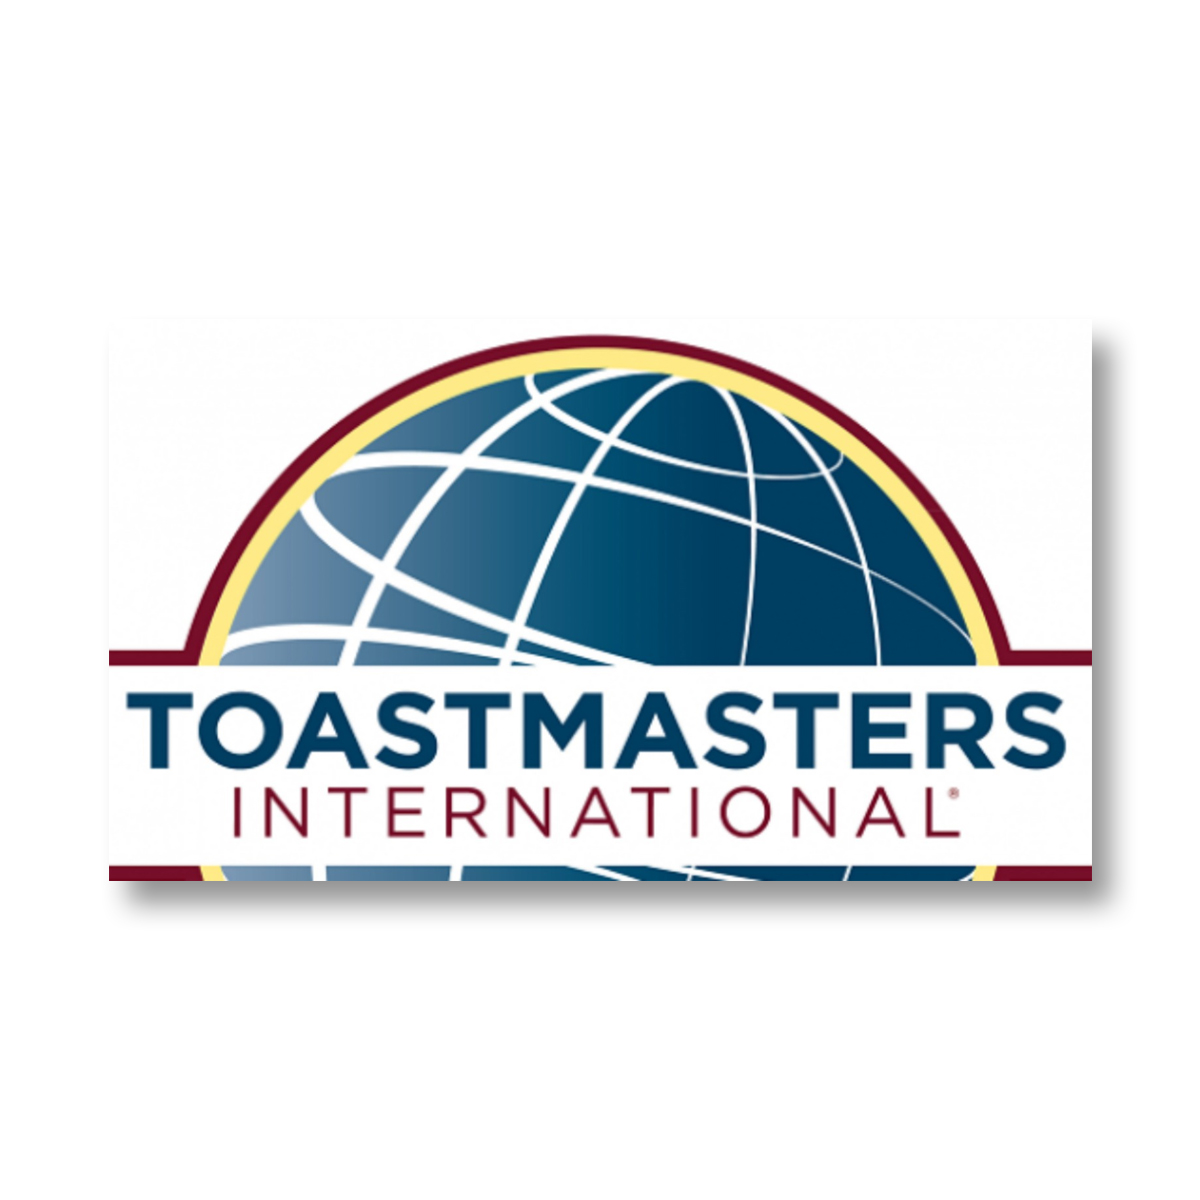 Toastmasters International Commercial Event Photography